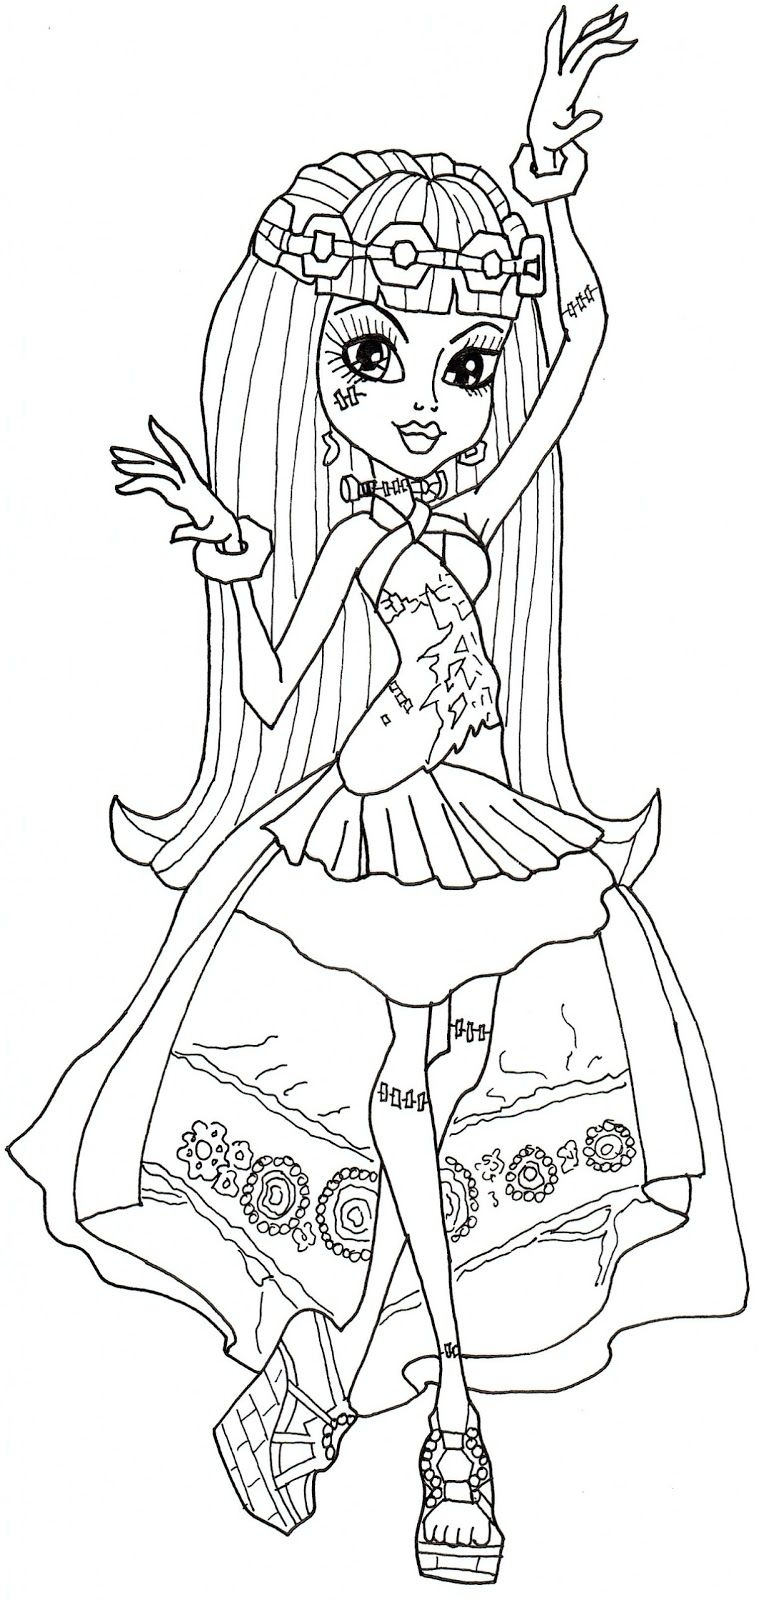 Frankie Stein 13 Wishes Coloring Page Coloring Pages Cute